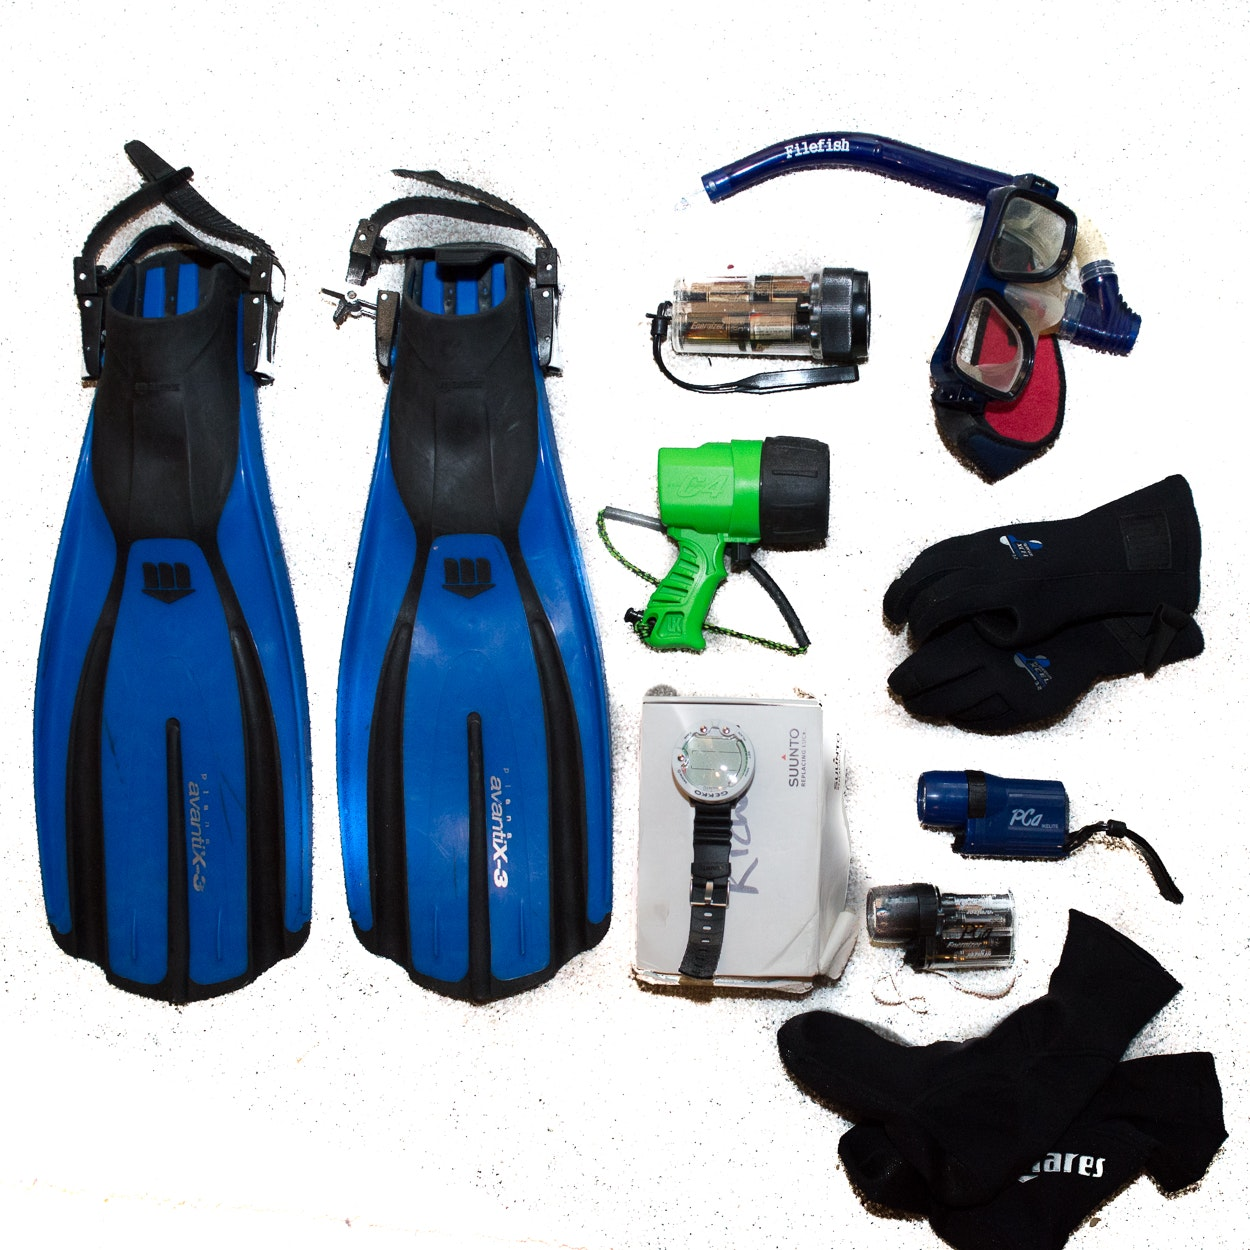 Water Sports, Including Diving Watches, Fins, Snorkles, Goggles and More